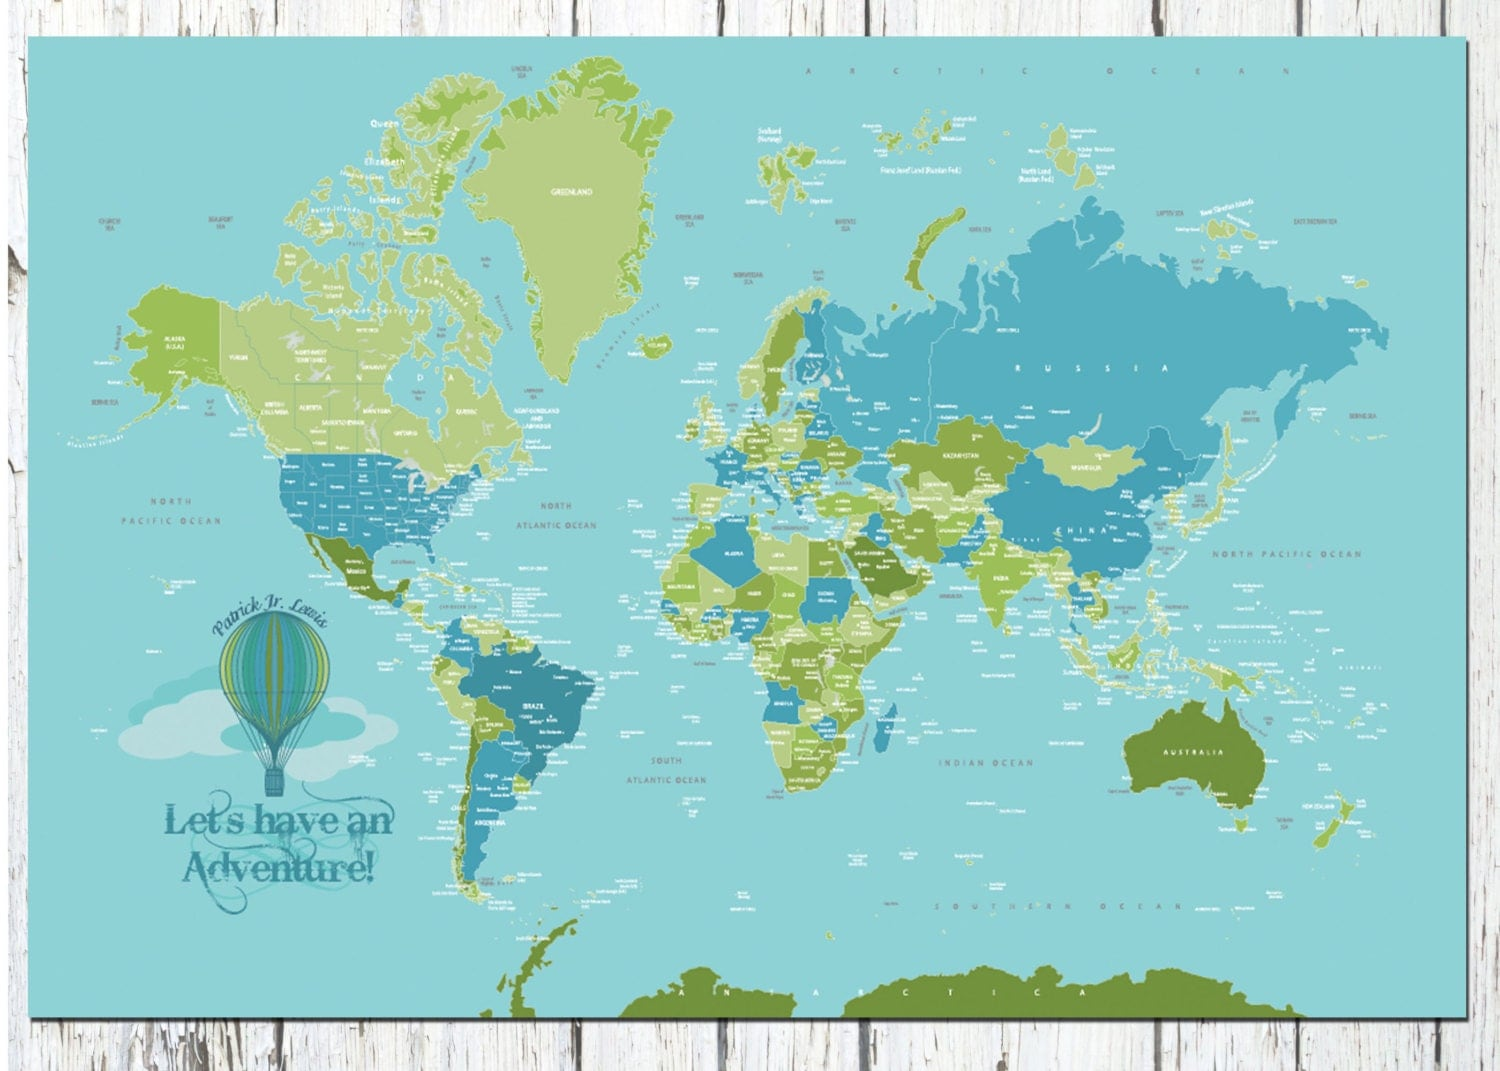 World Map Poster Country Names X Travel Artwork Travel - World map pic with country name